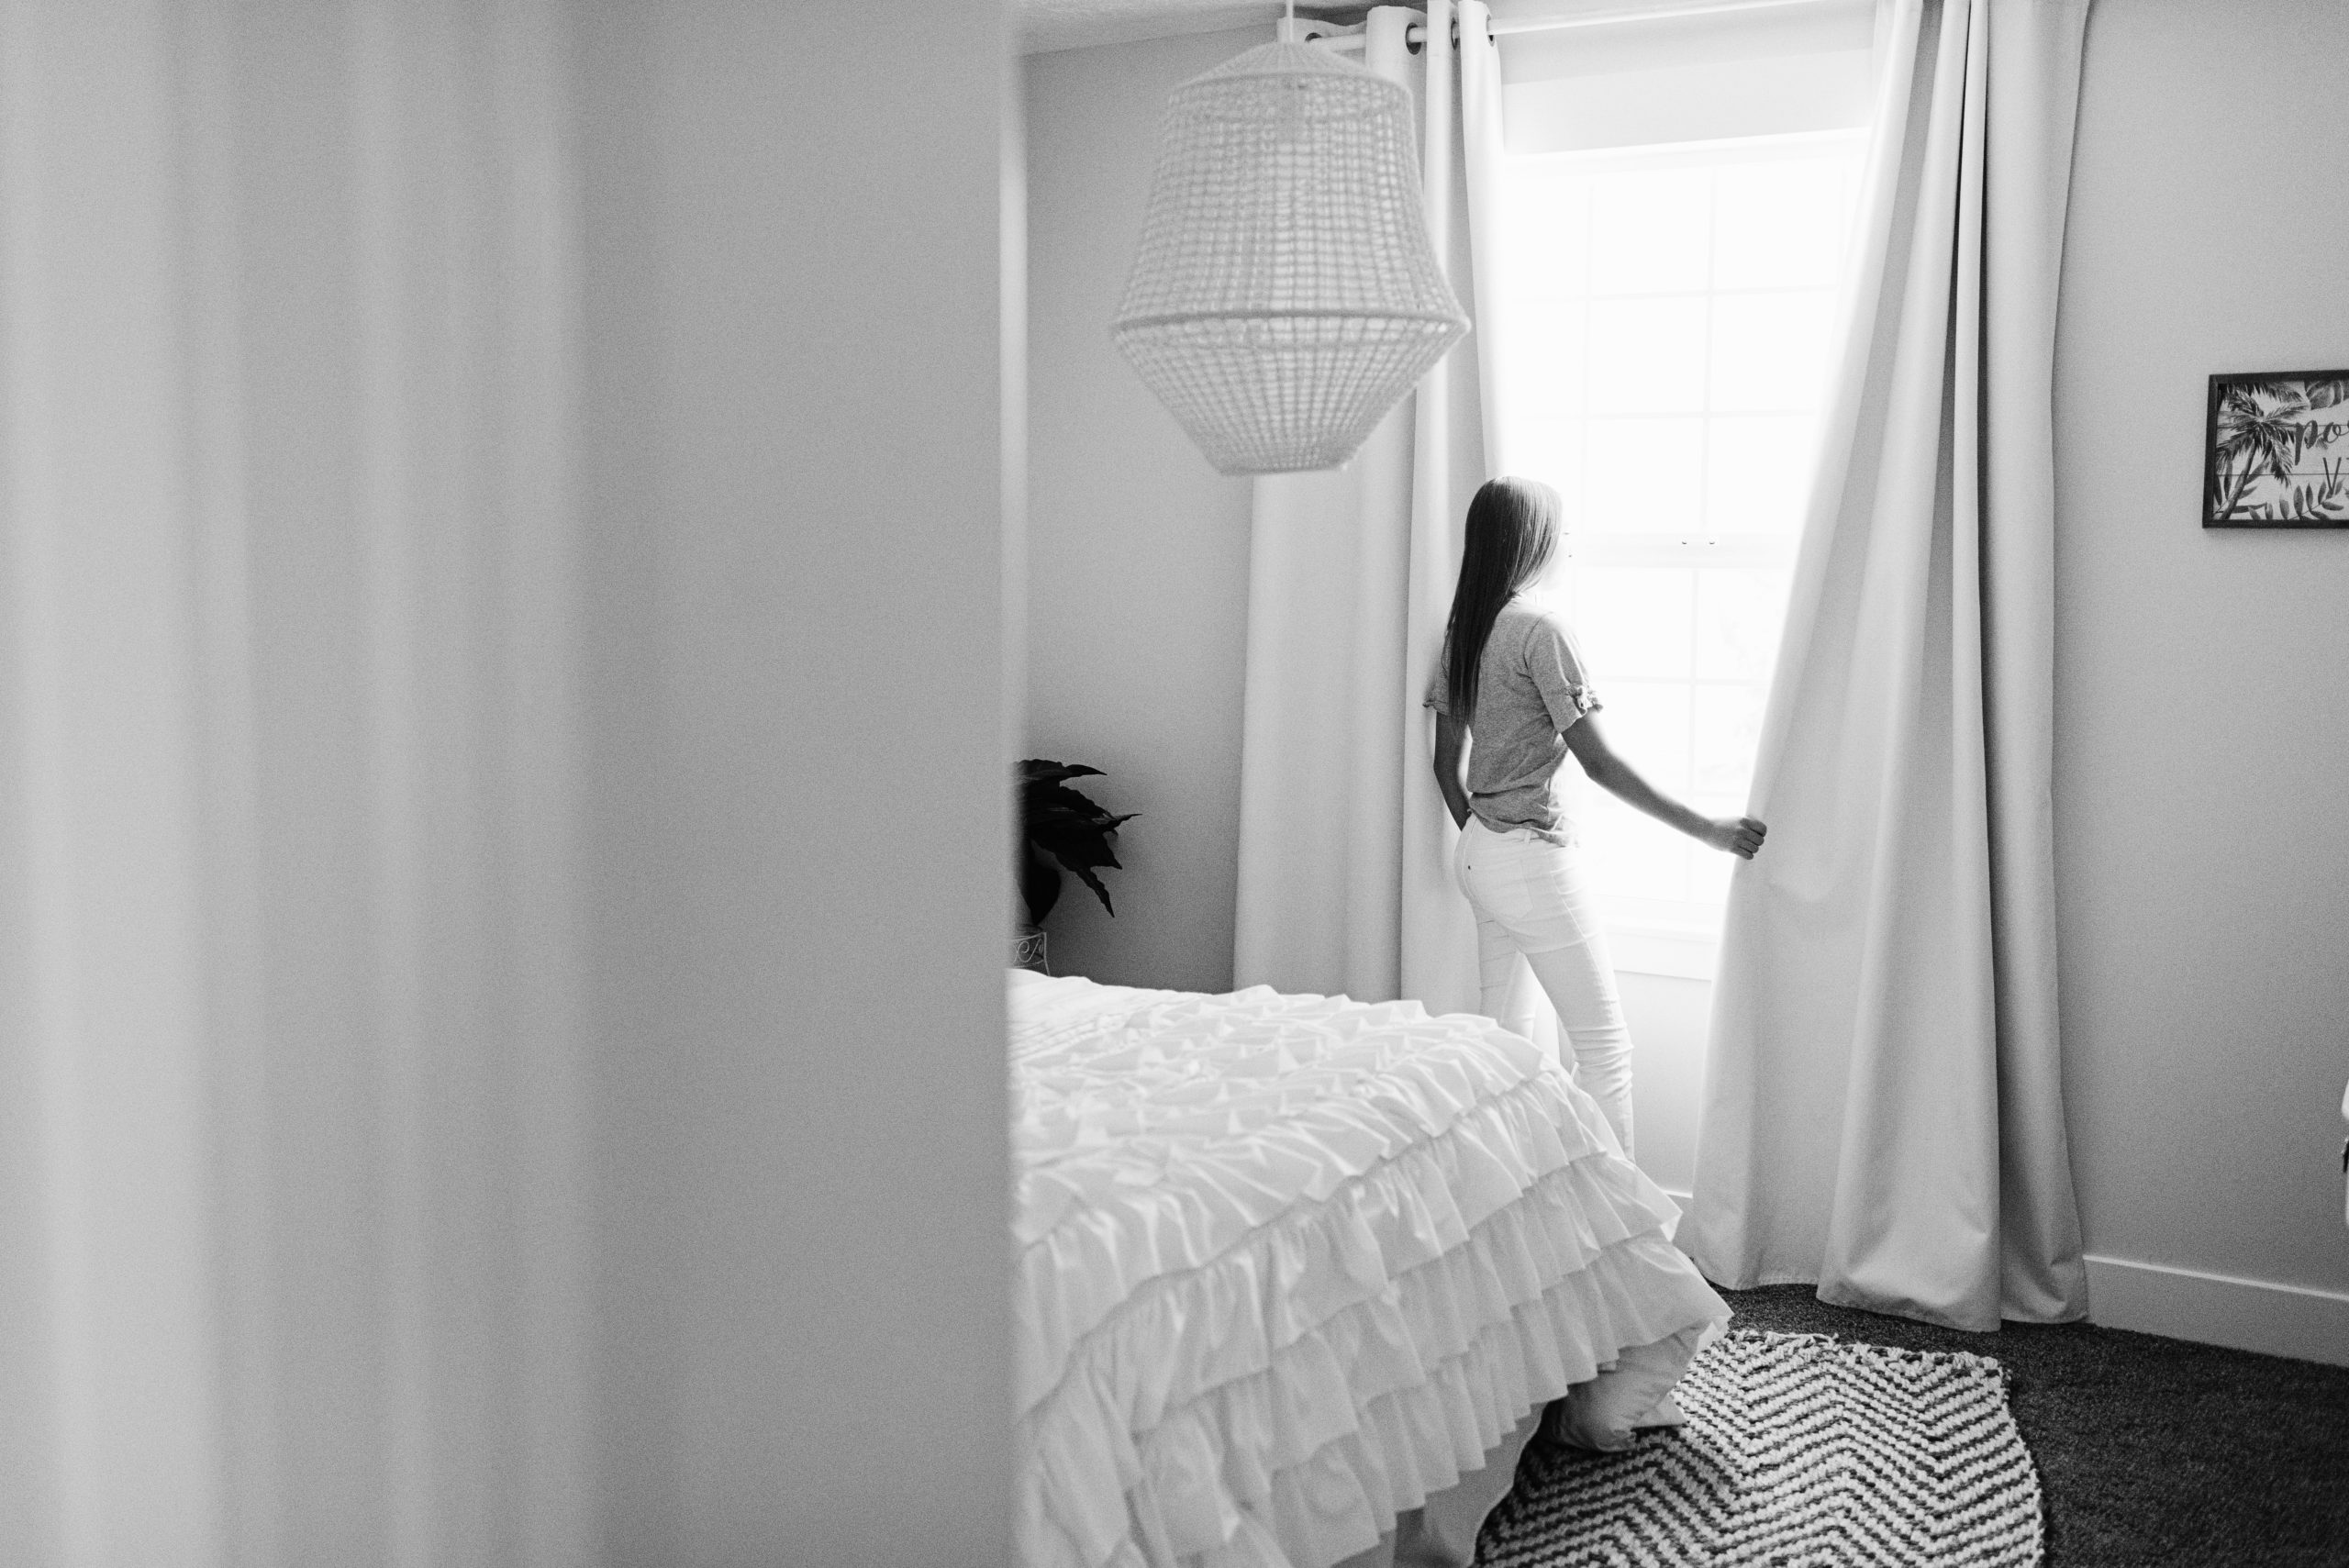 A photo of a young woman gazing out the window of her bedroom.